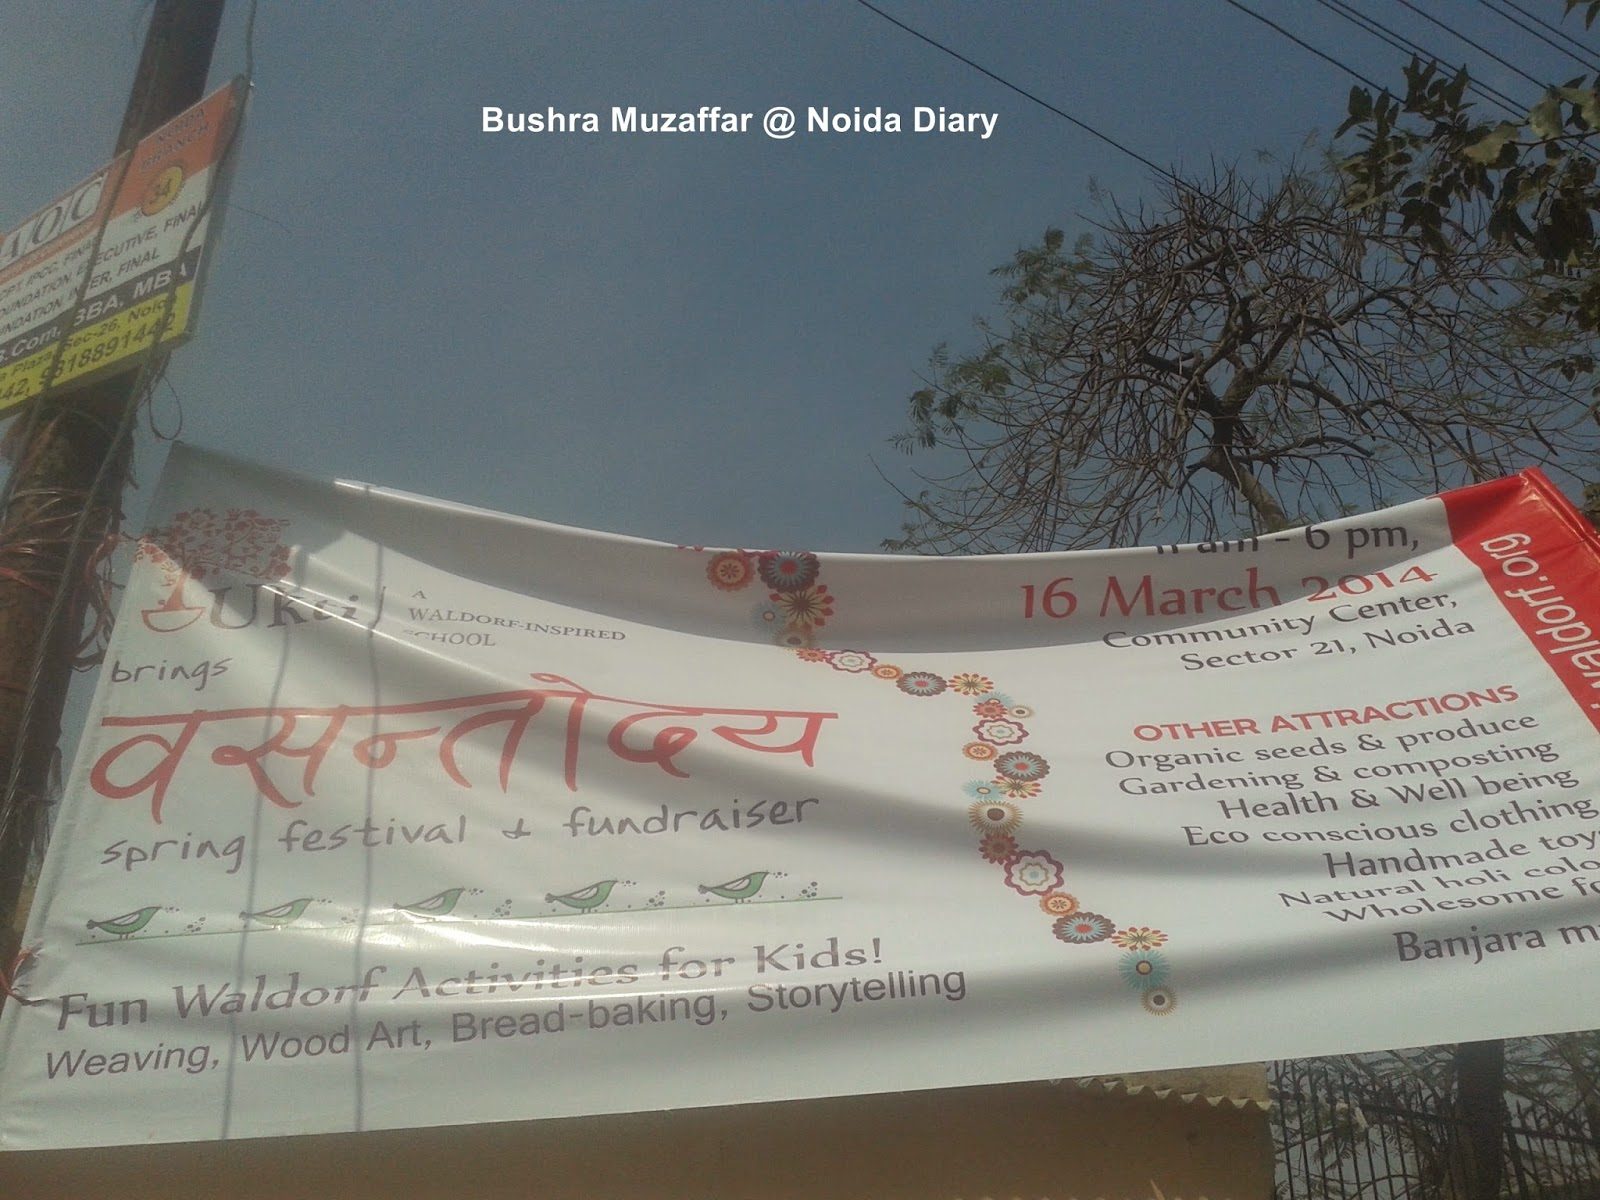 Vasant Uday - Spring Festival and Fundraiser at Jal Vayu Vihar Community Center, Sector 21, Noida